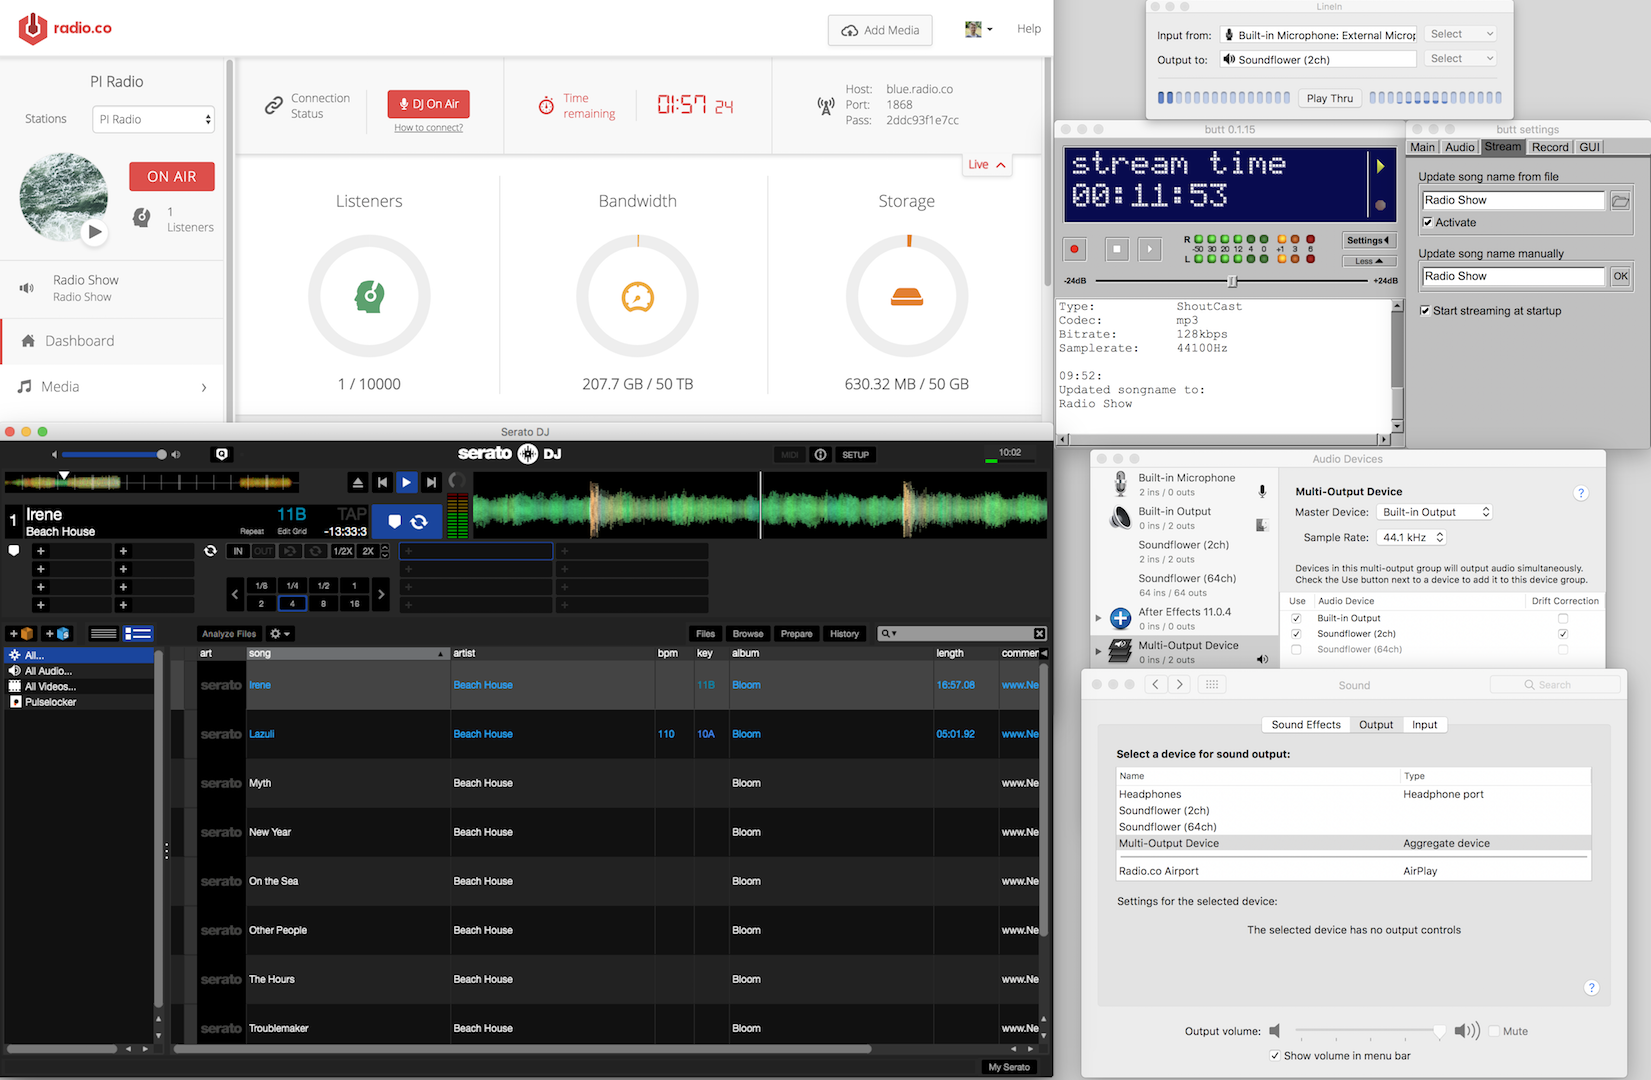 Live connection from Serato DJ to Radio.co.